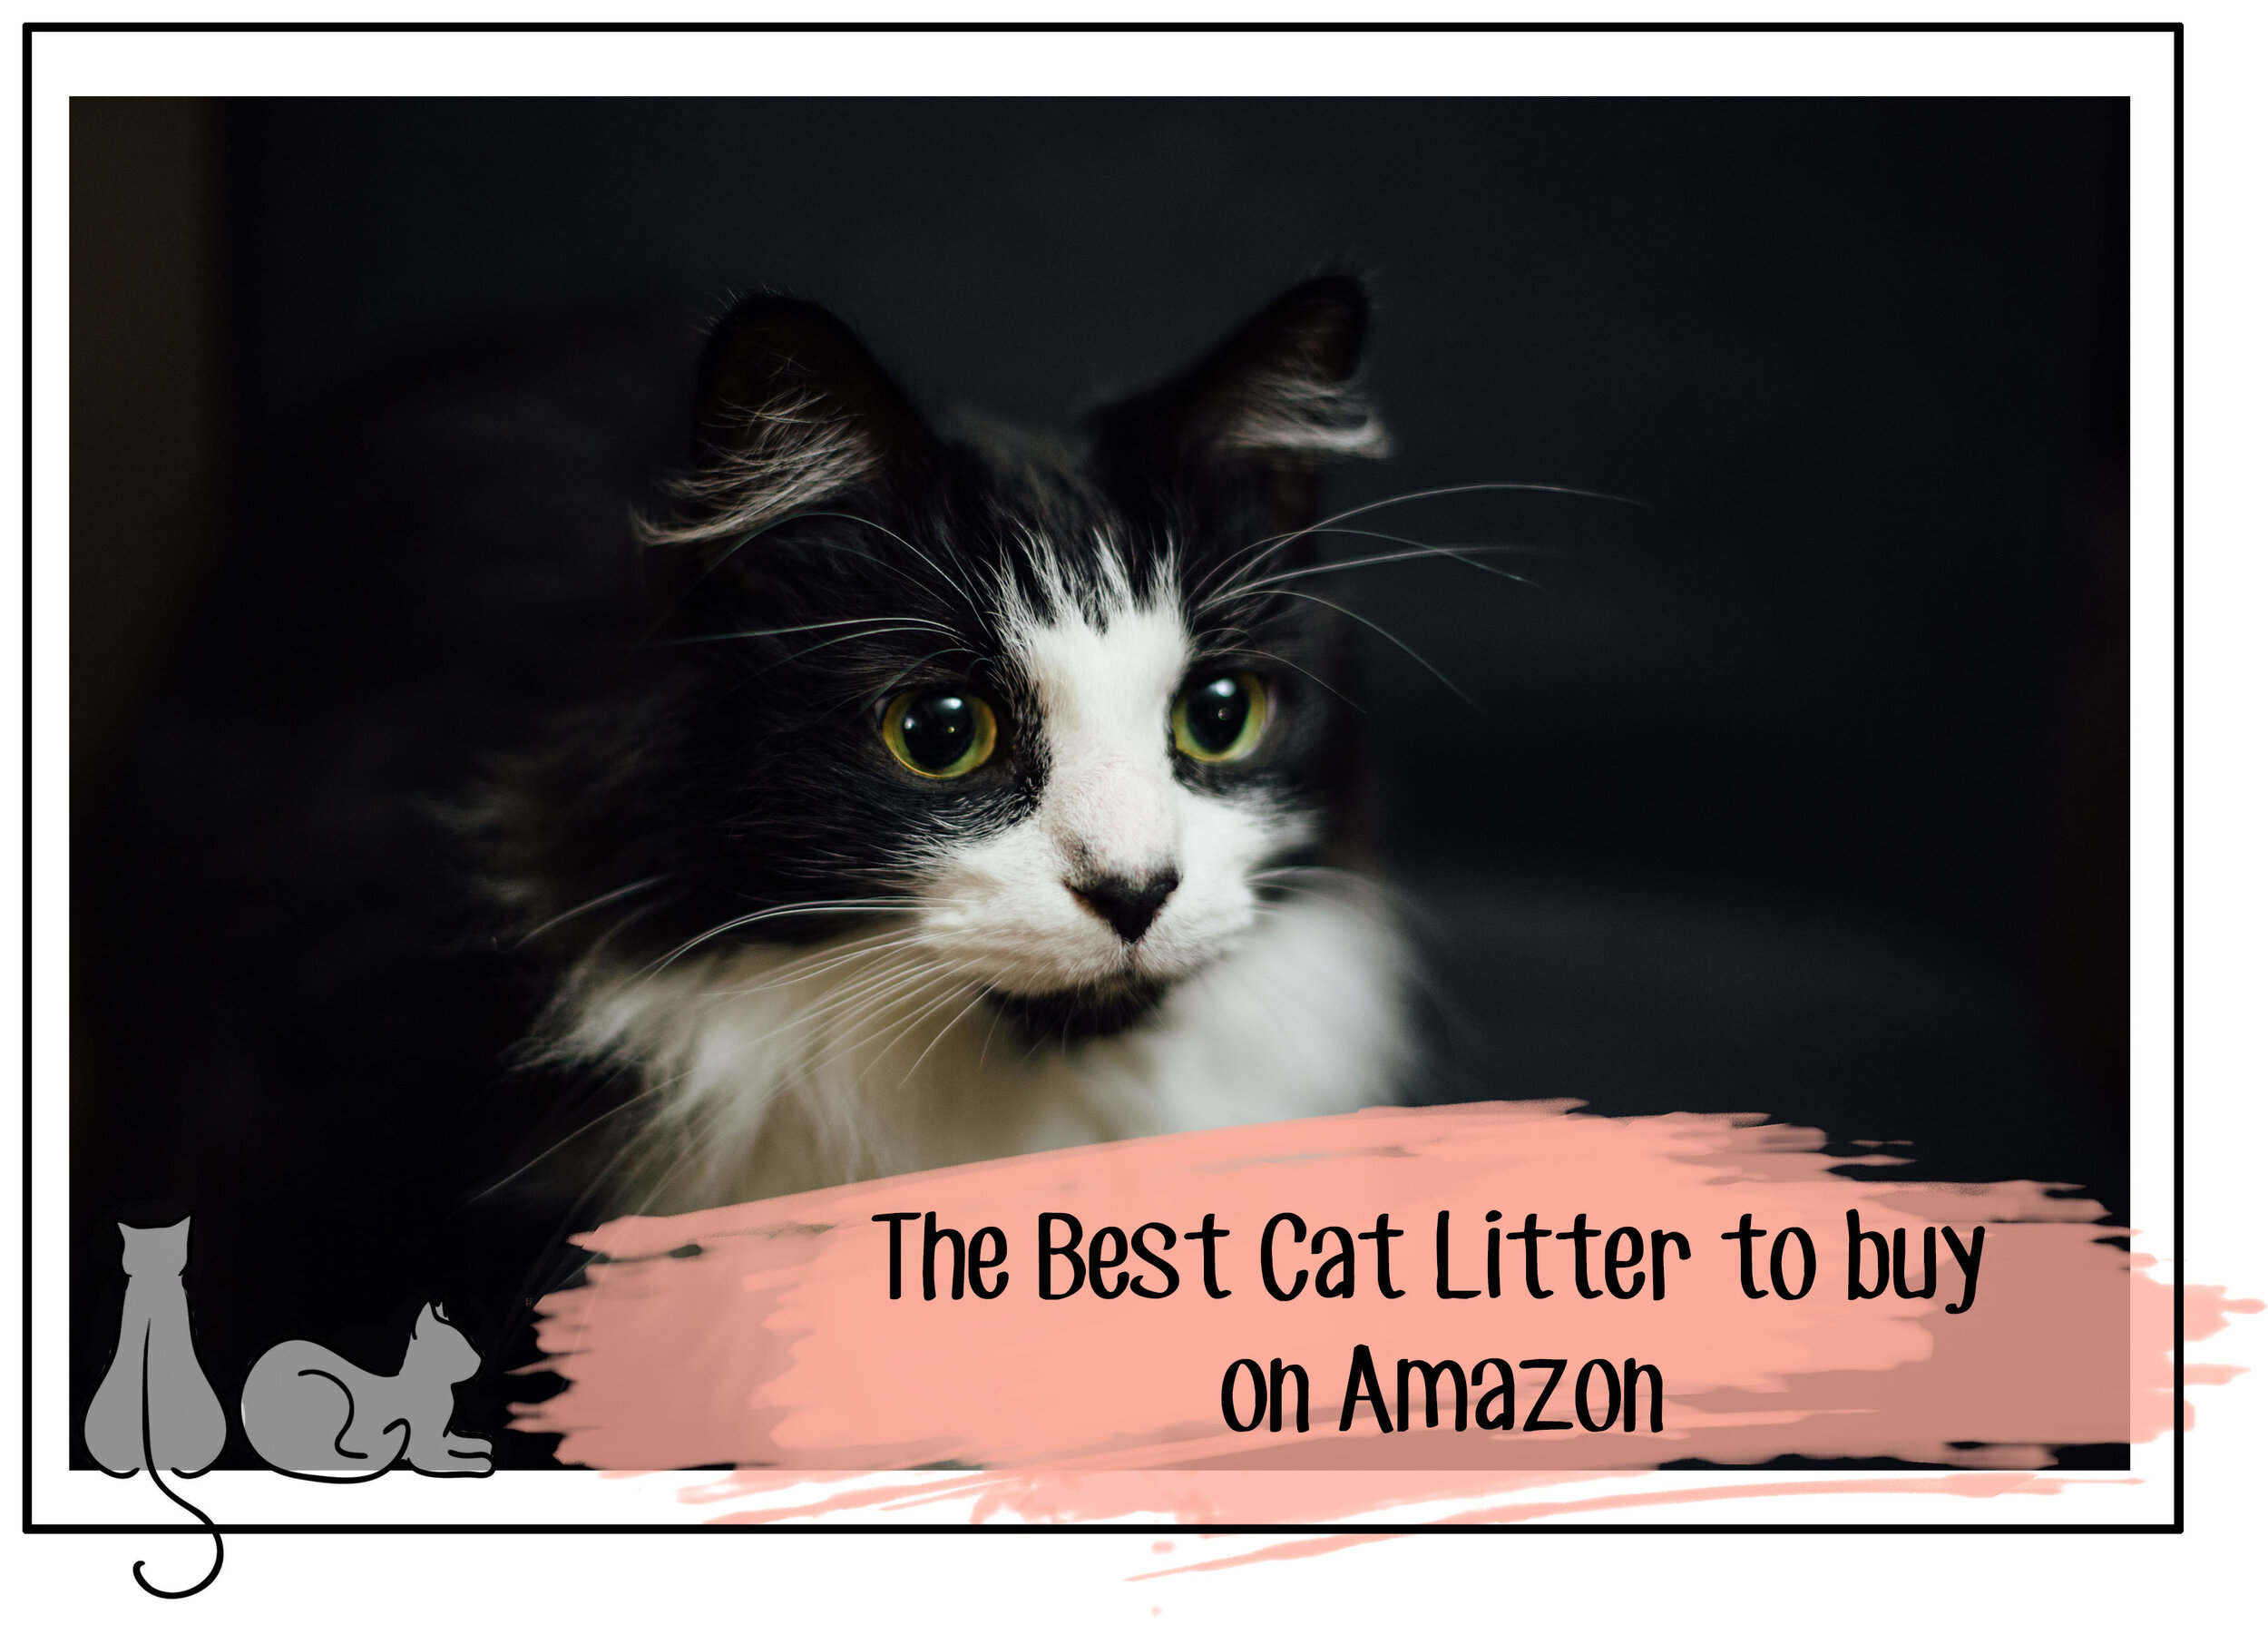 best cat litter to buy on Amazon.jpg